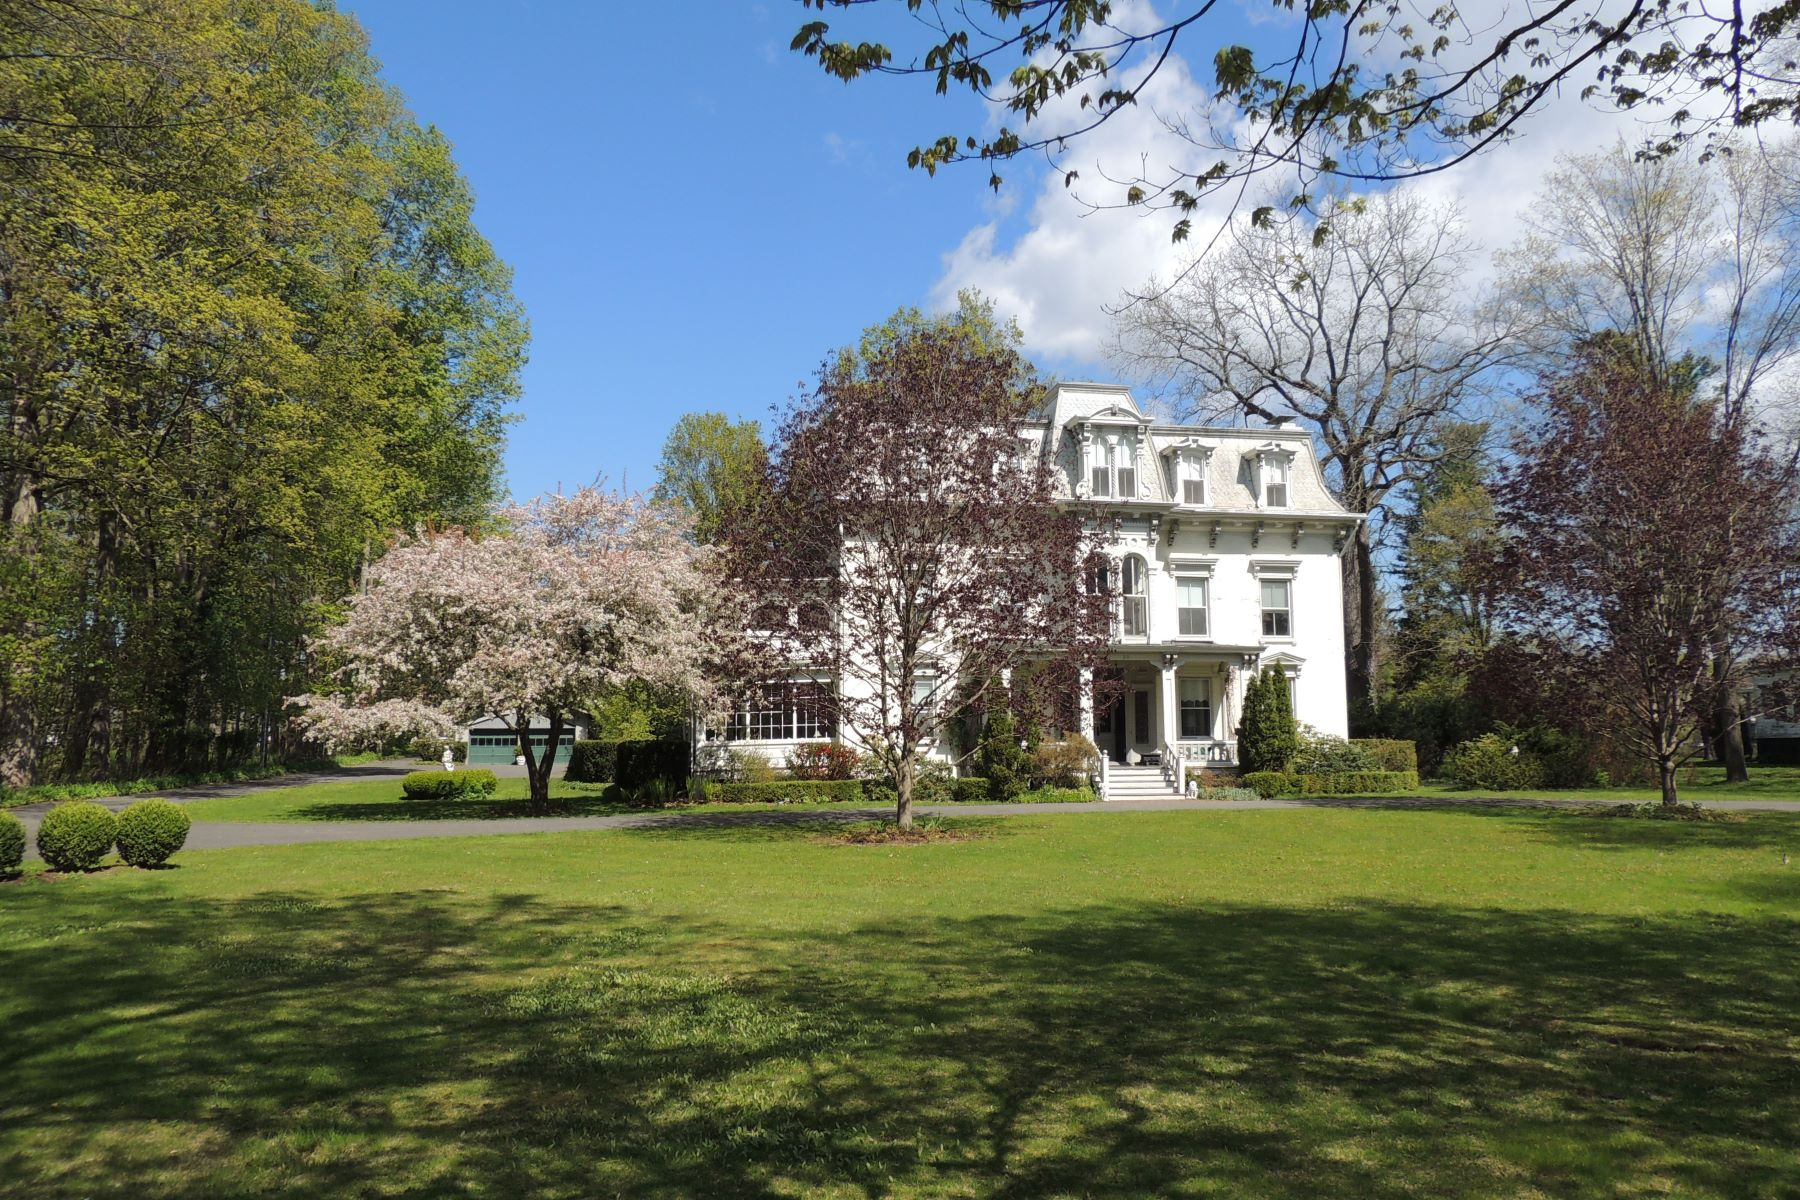 Single Family Homes for Active at Historic Passion 20 Broad Street Kinderhook, New York 12106 United States